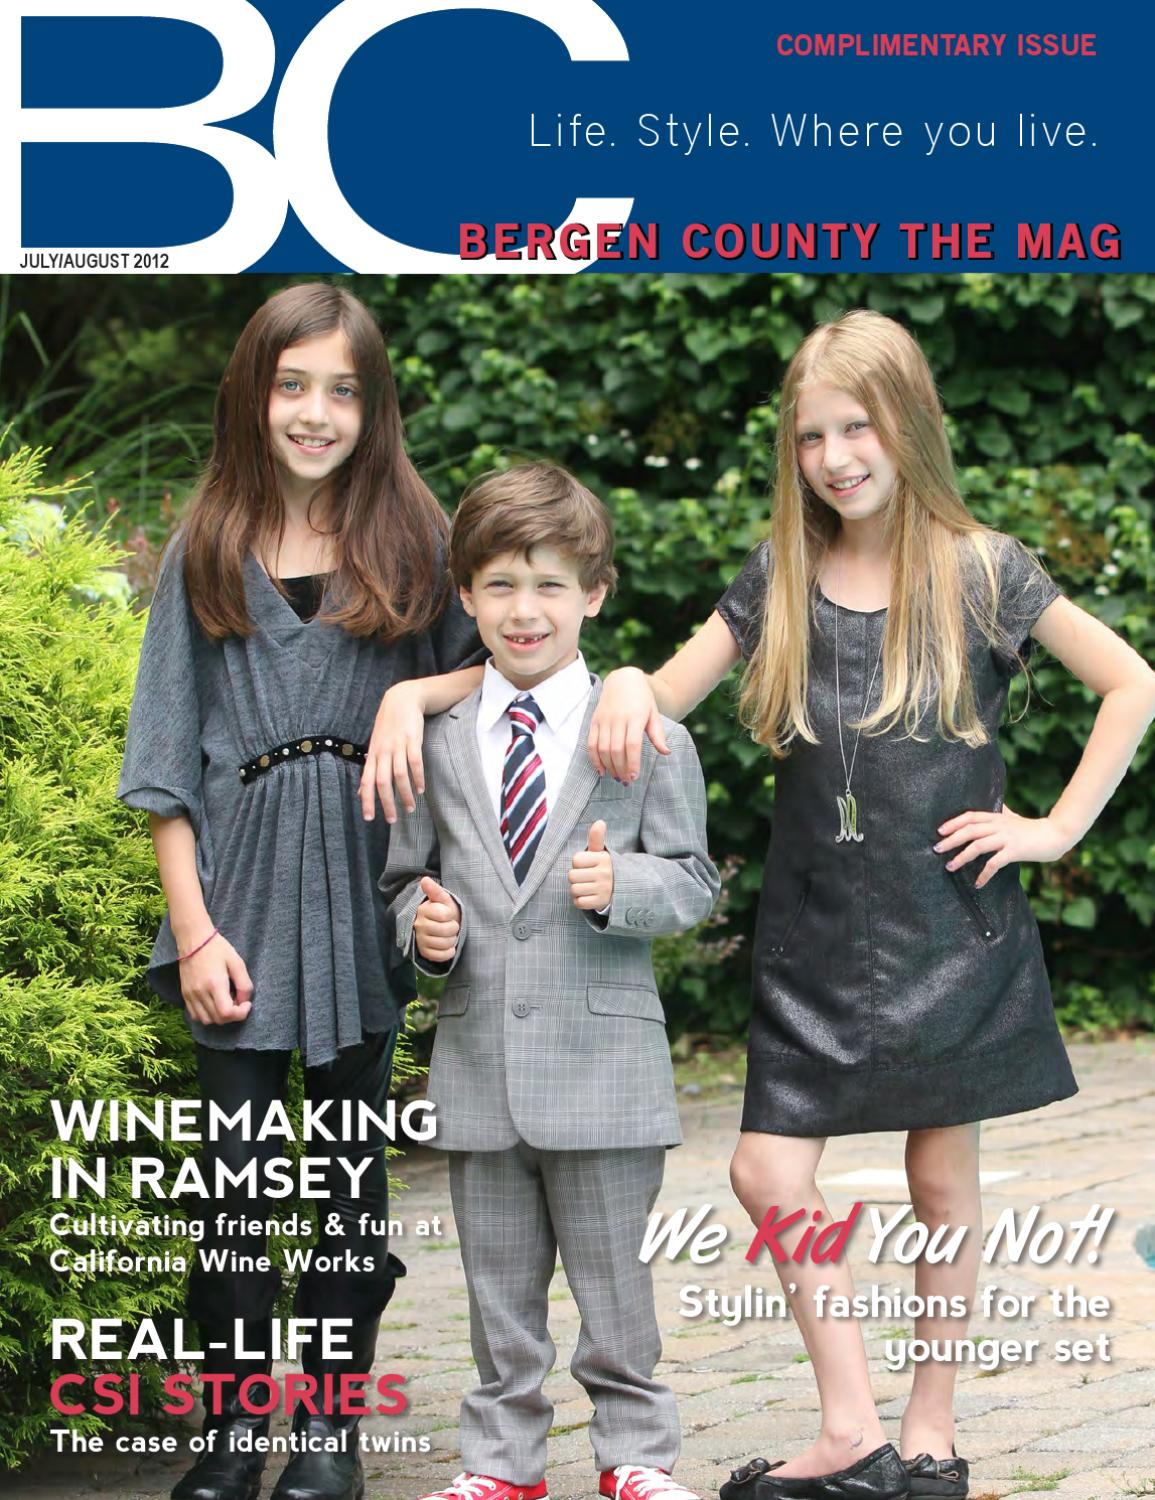 BC the Magazine July/August by Bergen County the Magazine - issuu